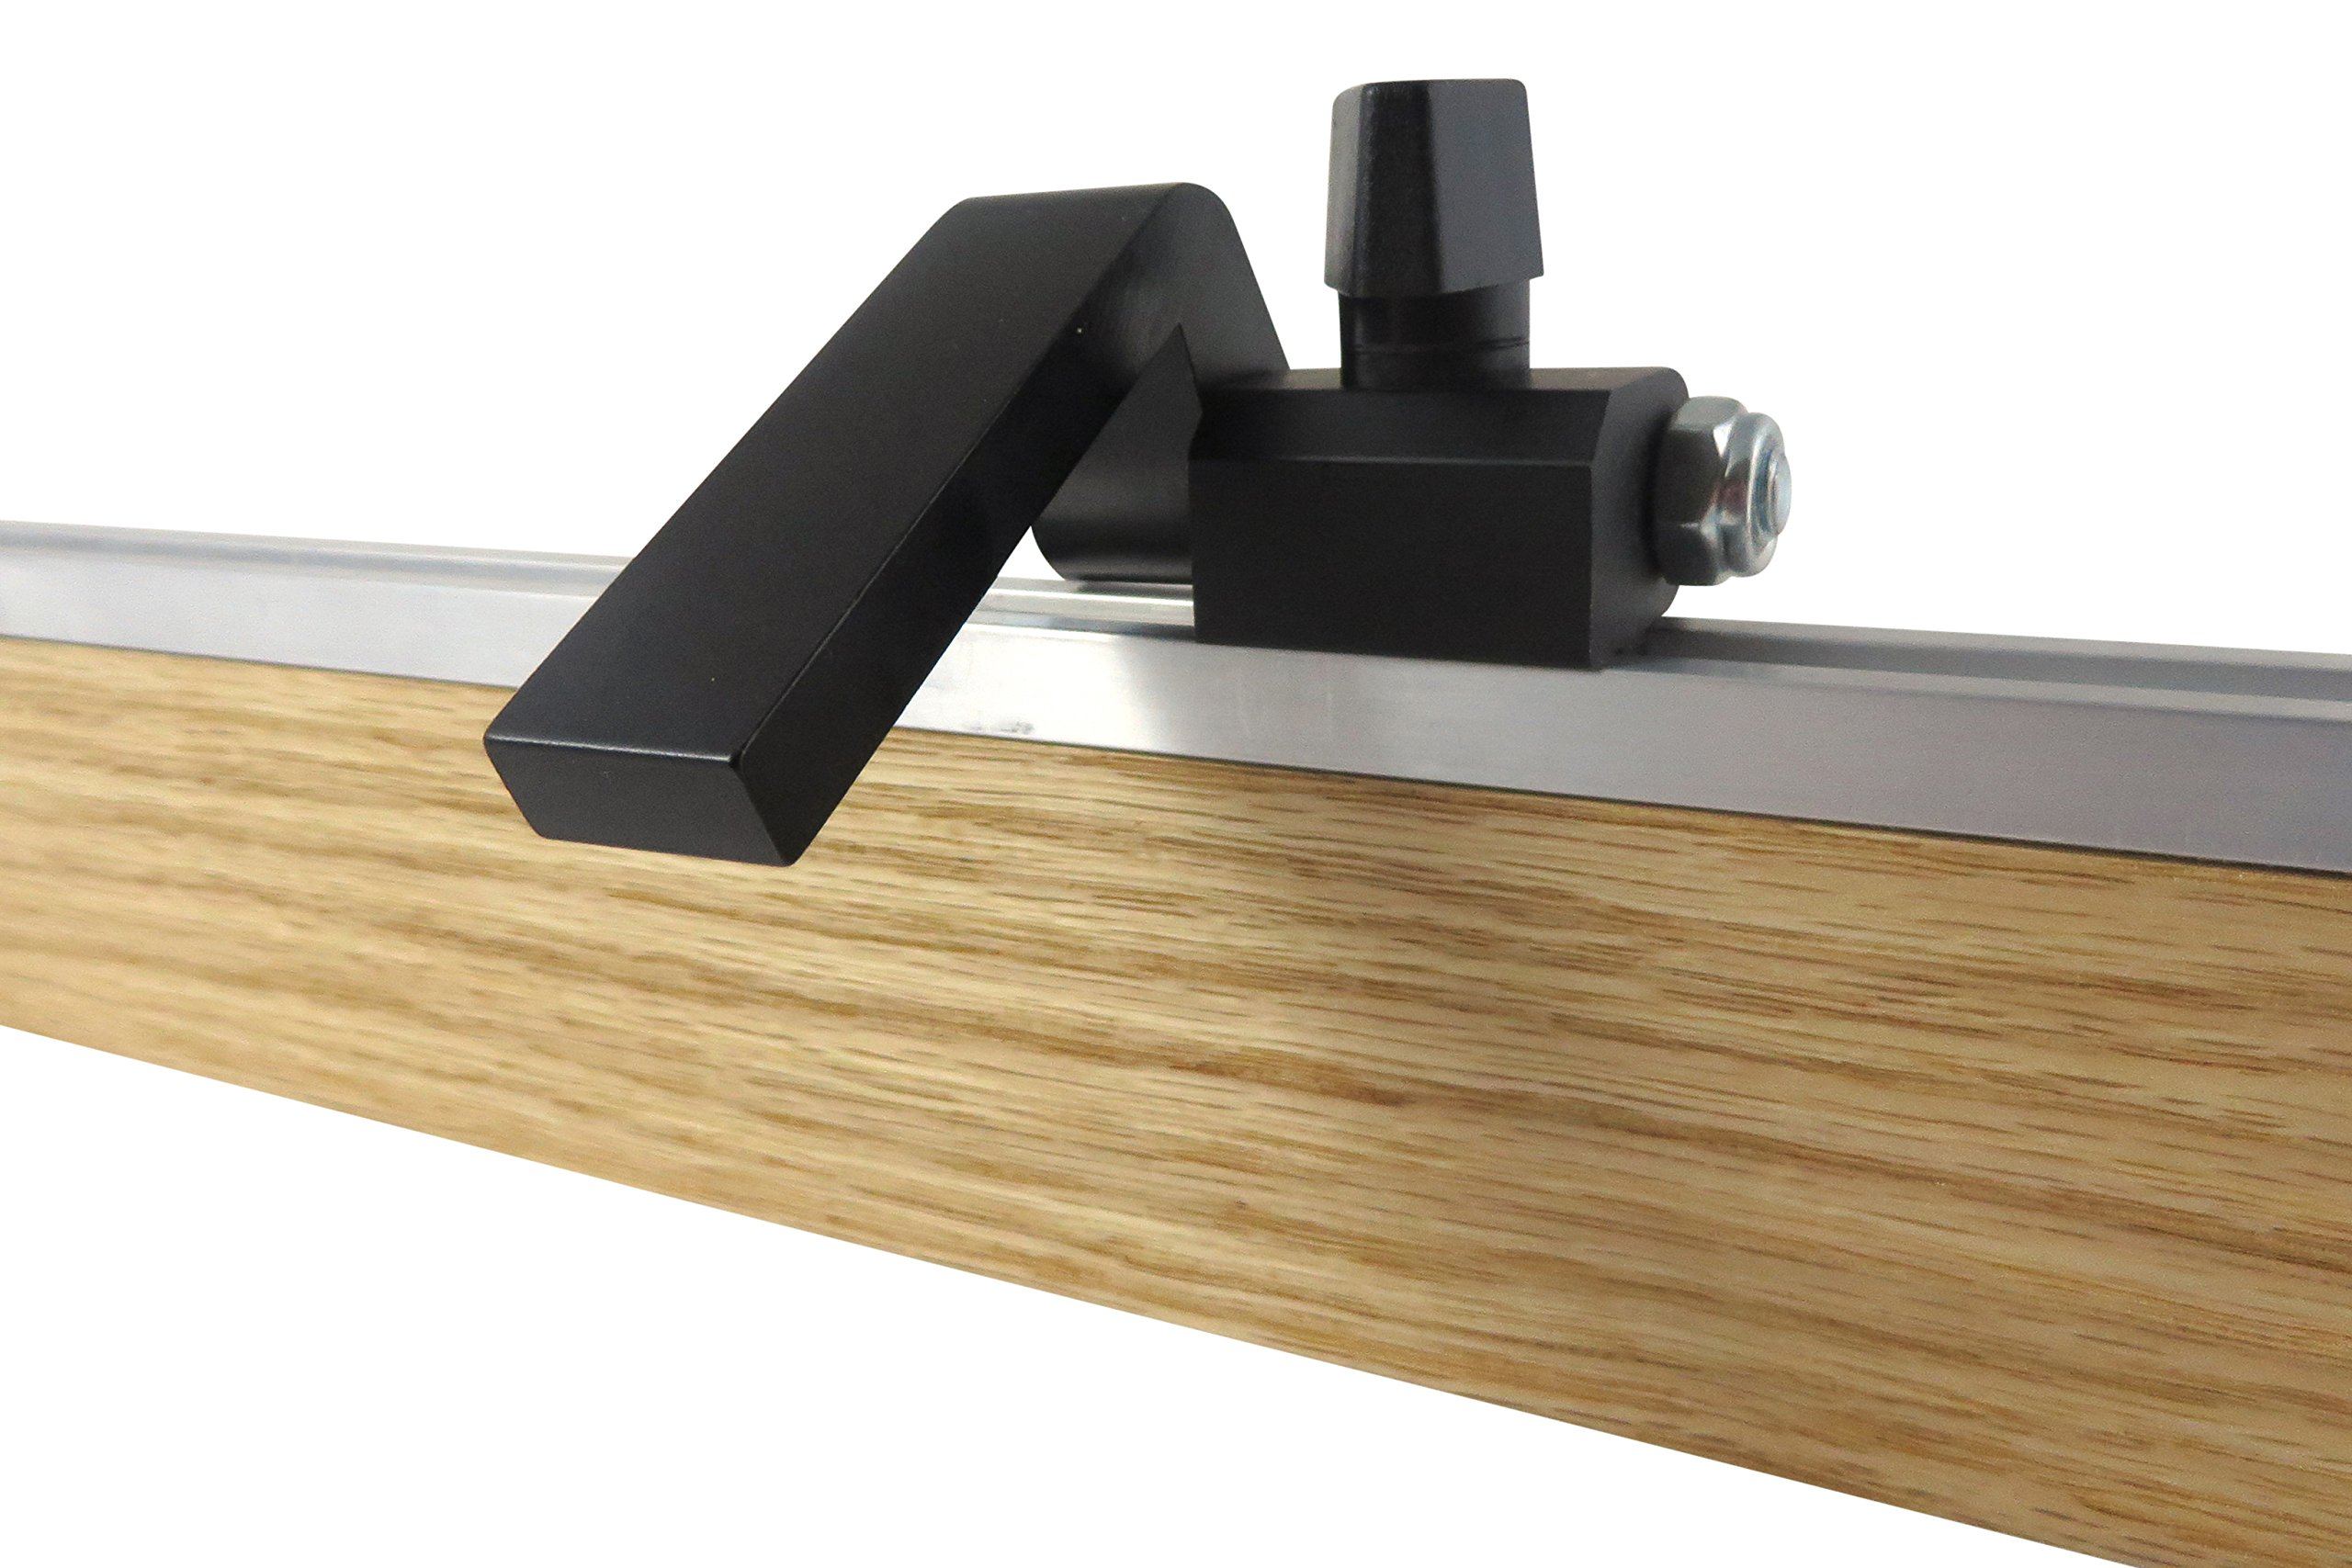 """Taytools Flip Stop Swing Away Stop for Any T Track That Accepts 1/4"""" Hex Head Bolts by Taytools (Image #2)"""